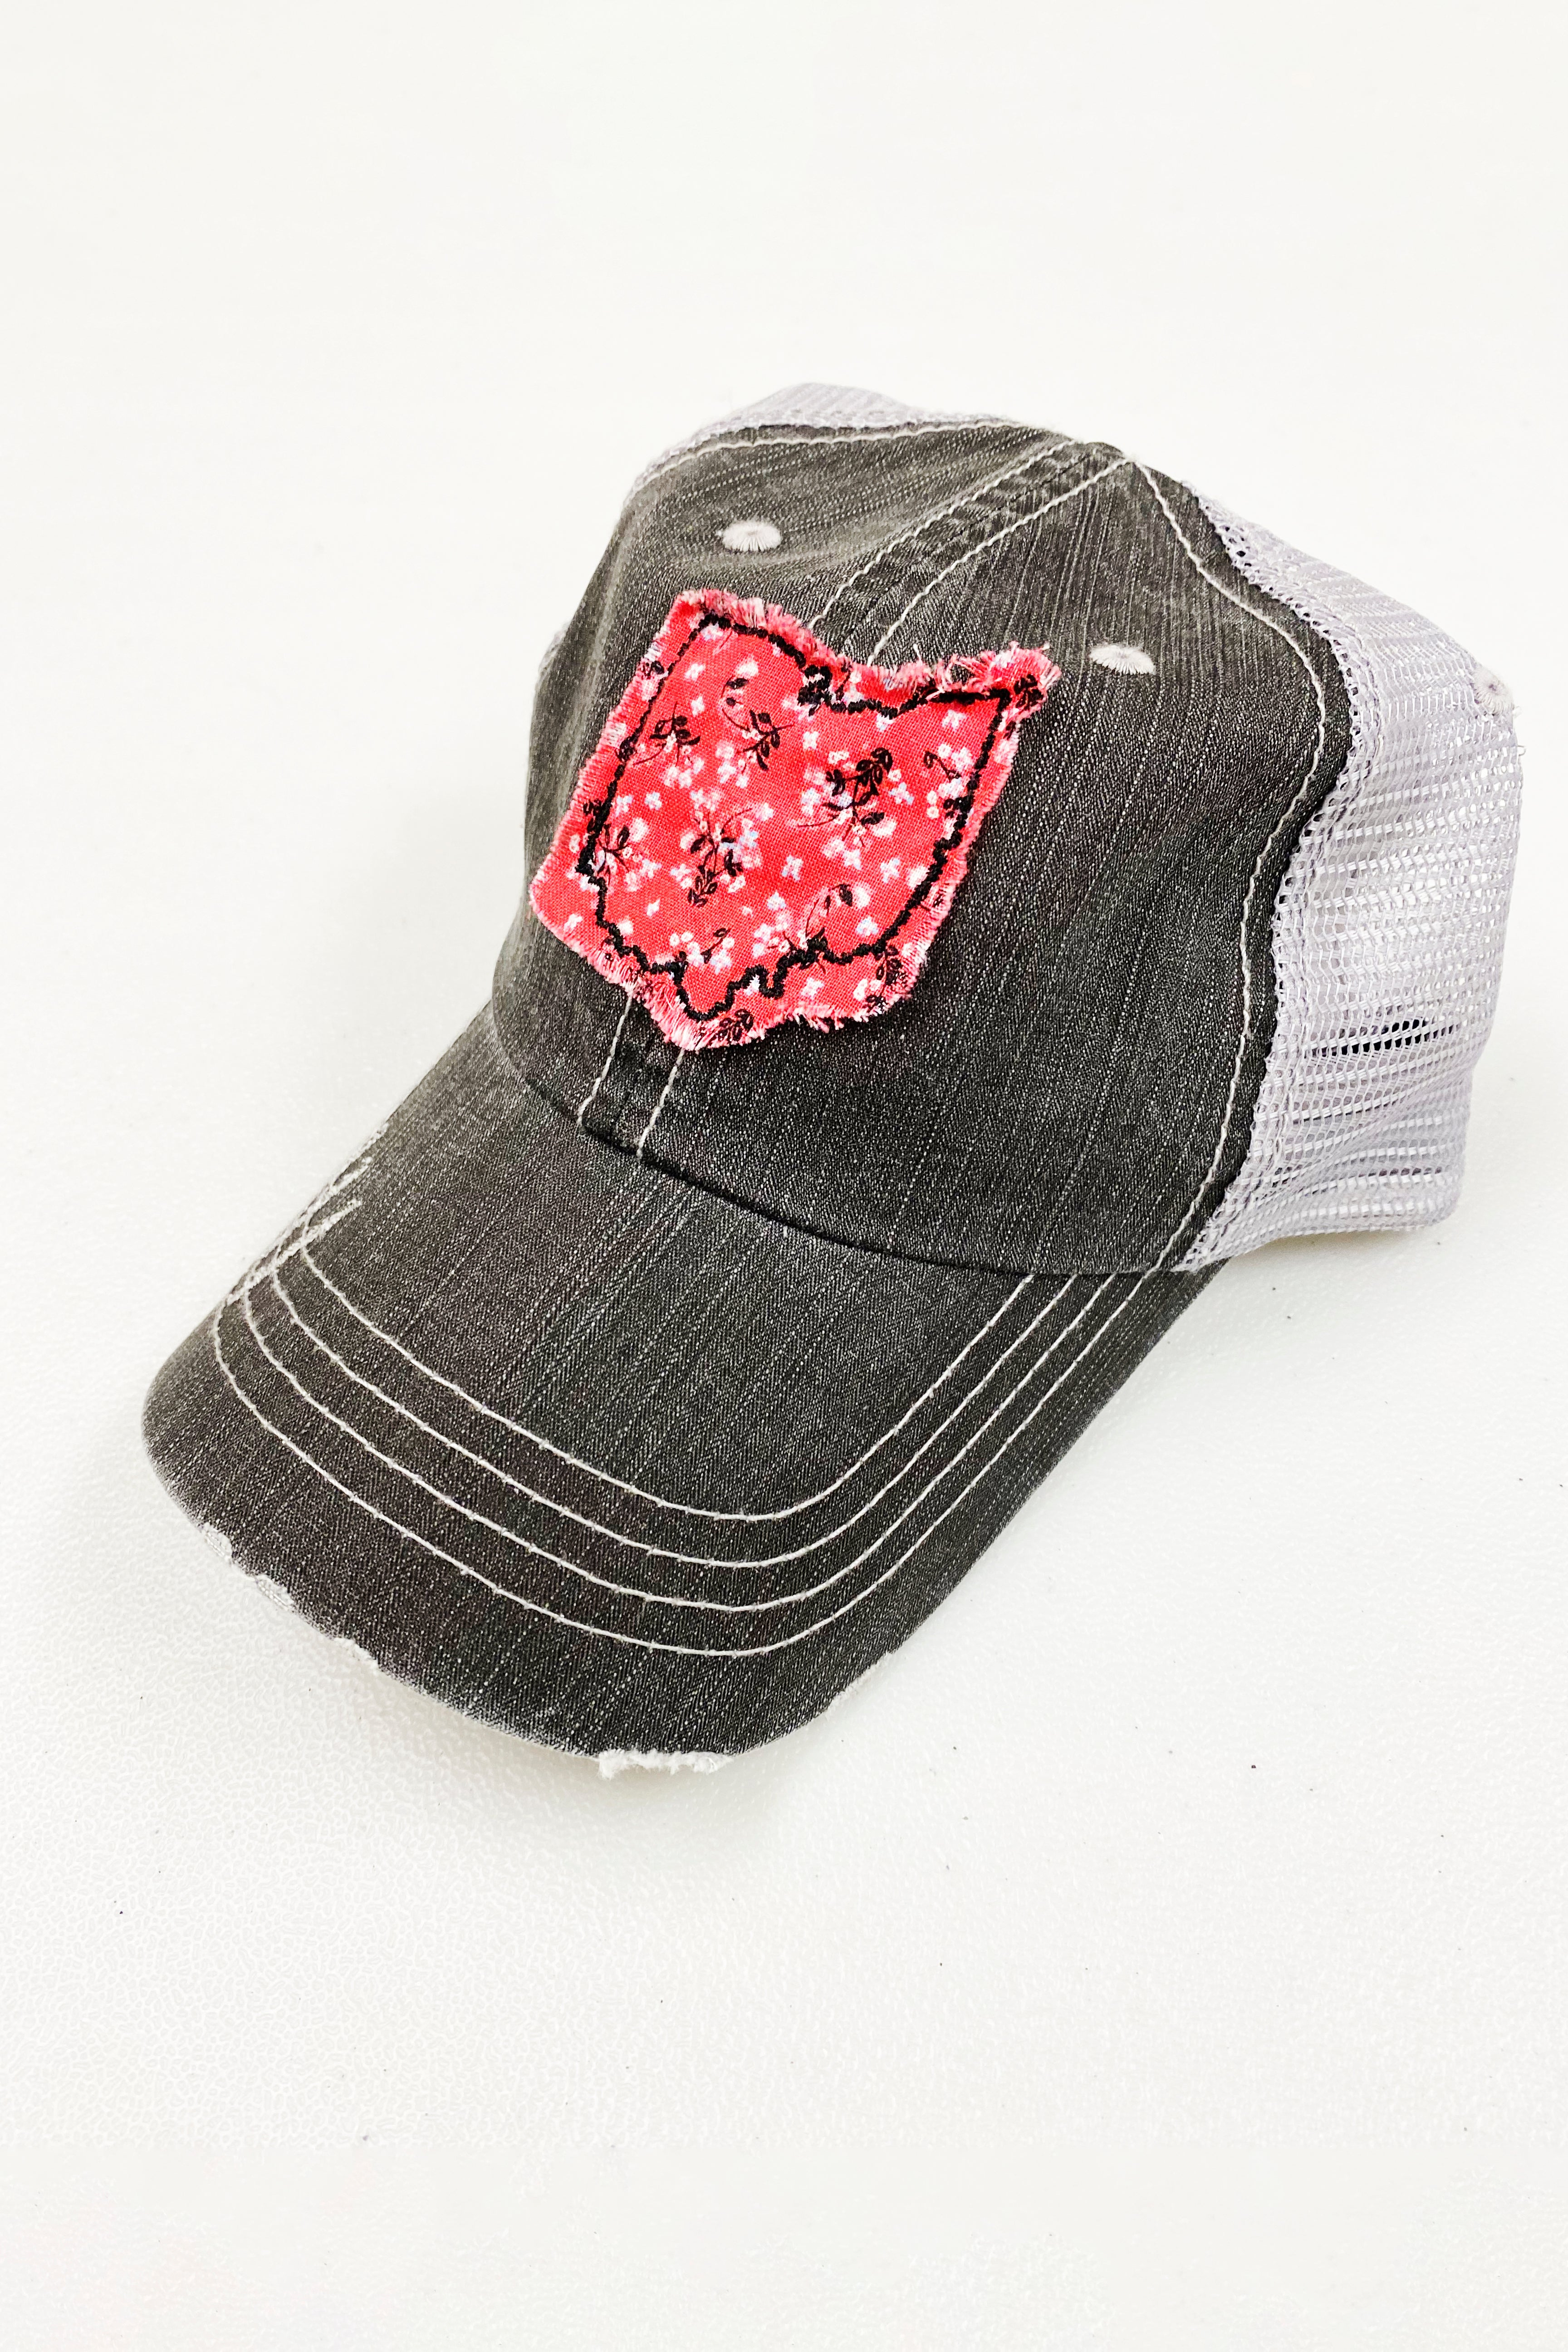 Ohio Distressed Trucker Hat/Pink Floral